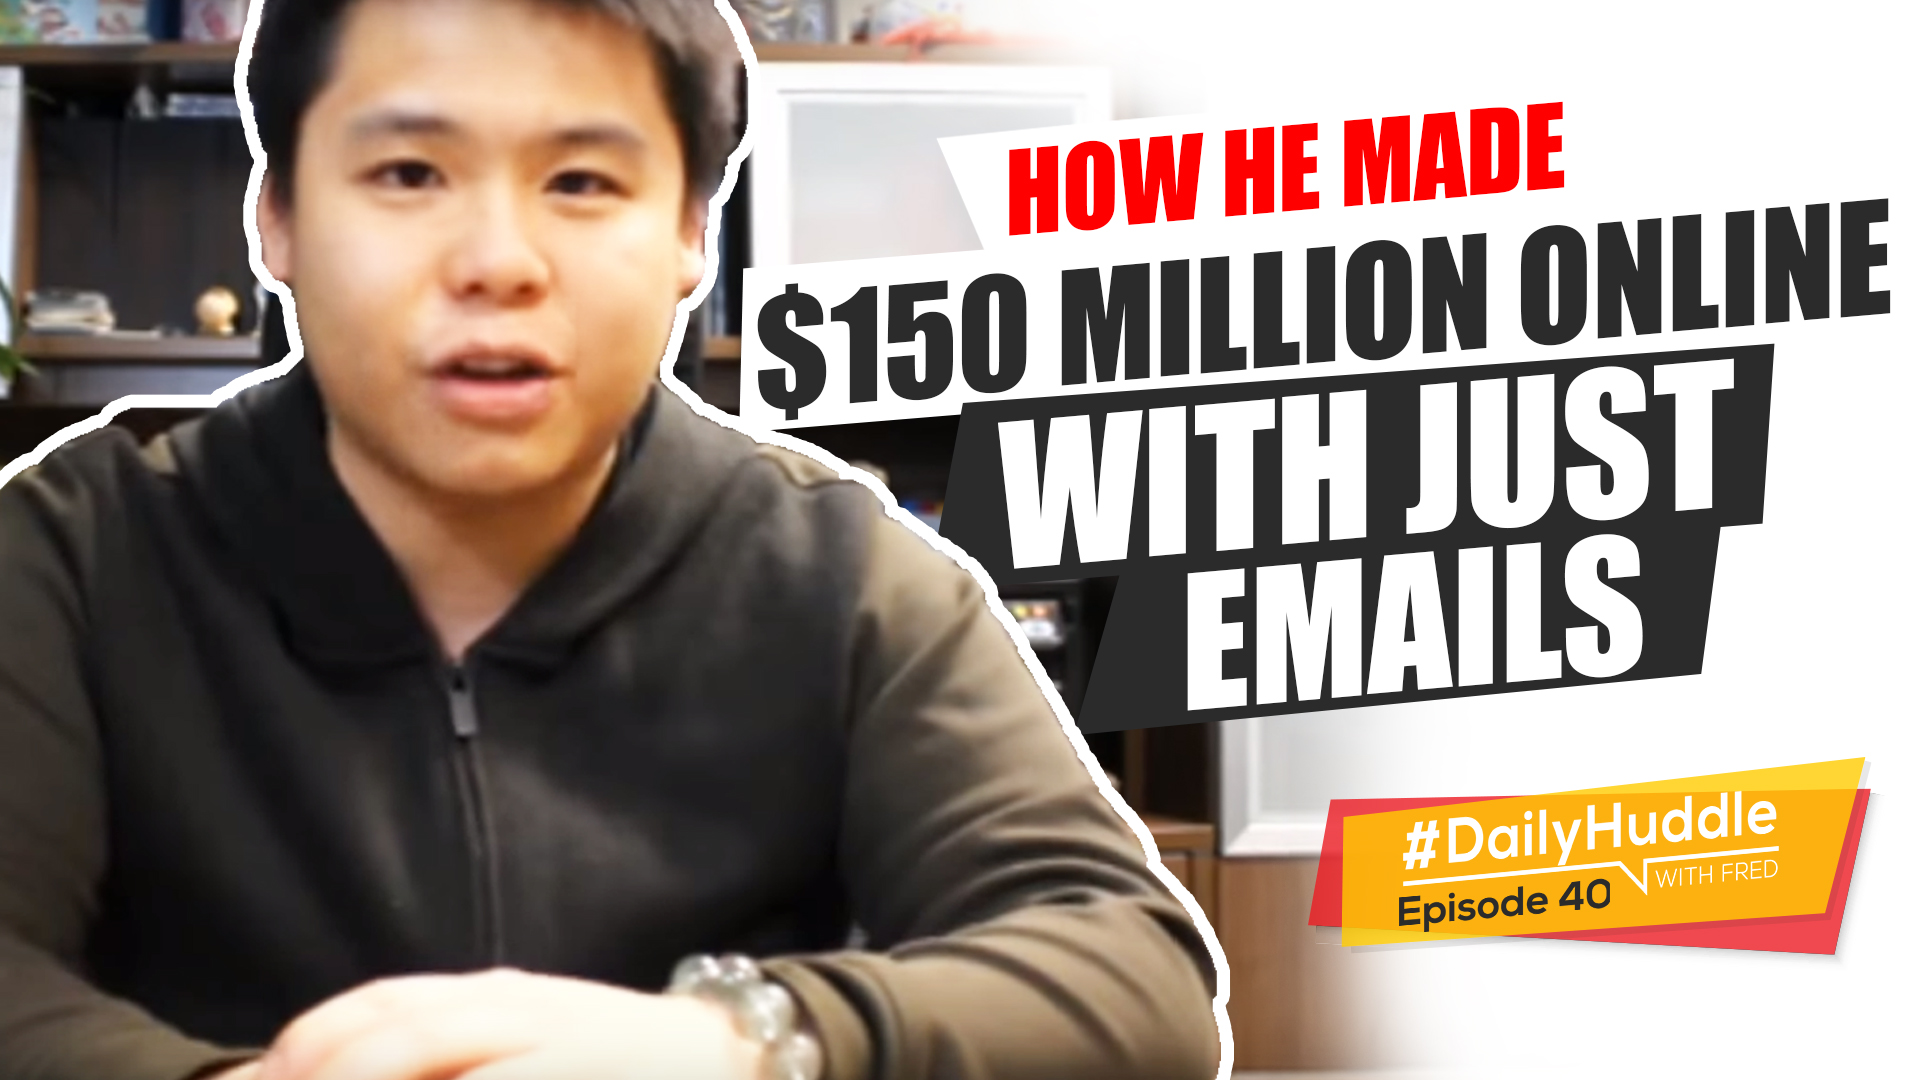 Ep 40 | How He Made $150 MILLION Online With Just EMAILS